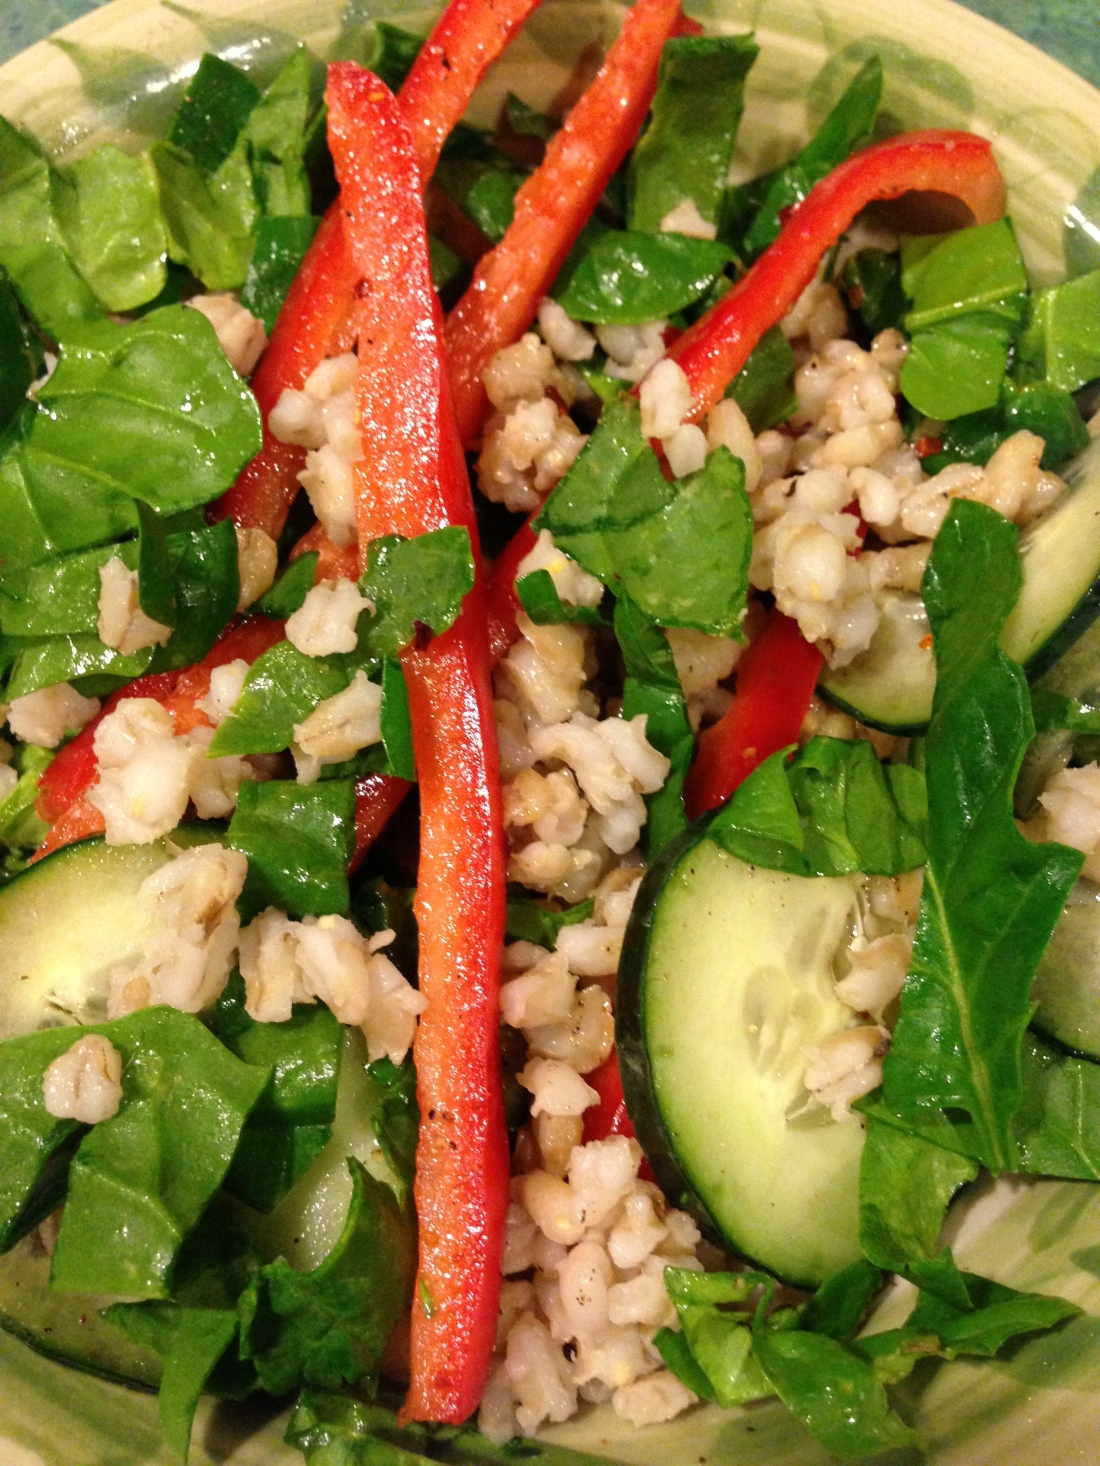 Vegan Salad with Spinach, Barley and Bell Peppers